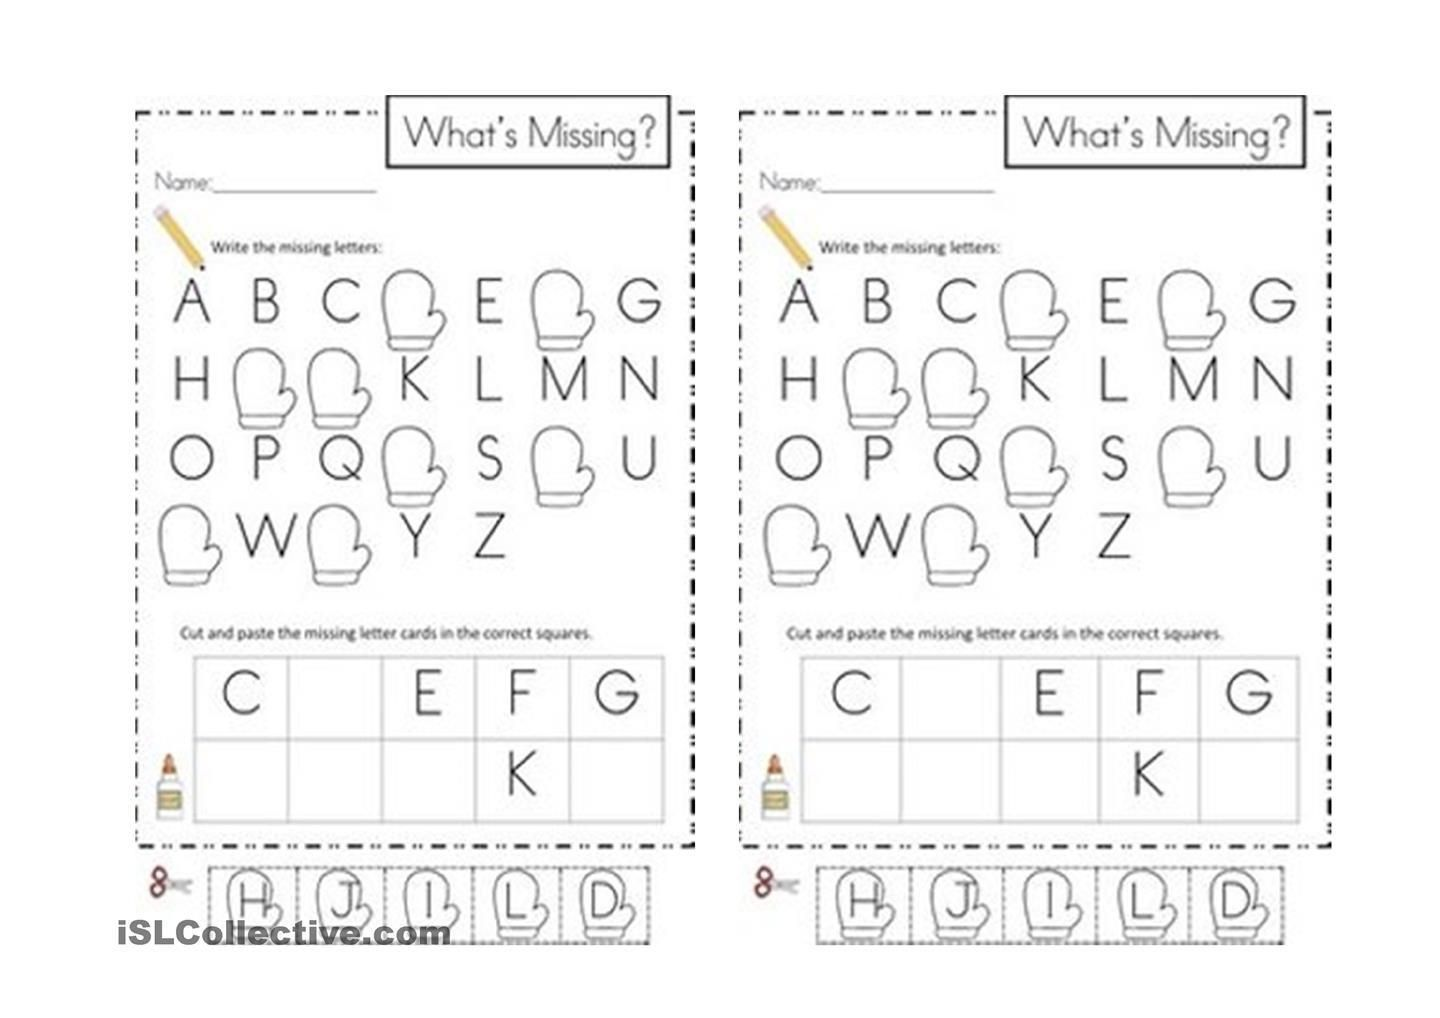 4 Missing Alphabet Worksheets For Kindergarten In